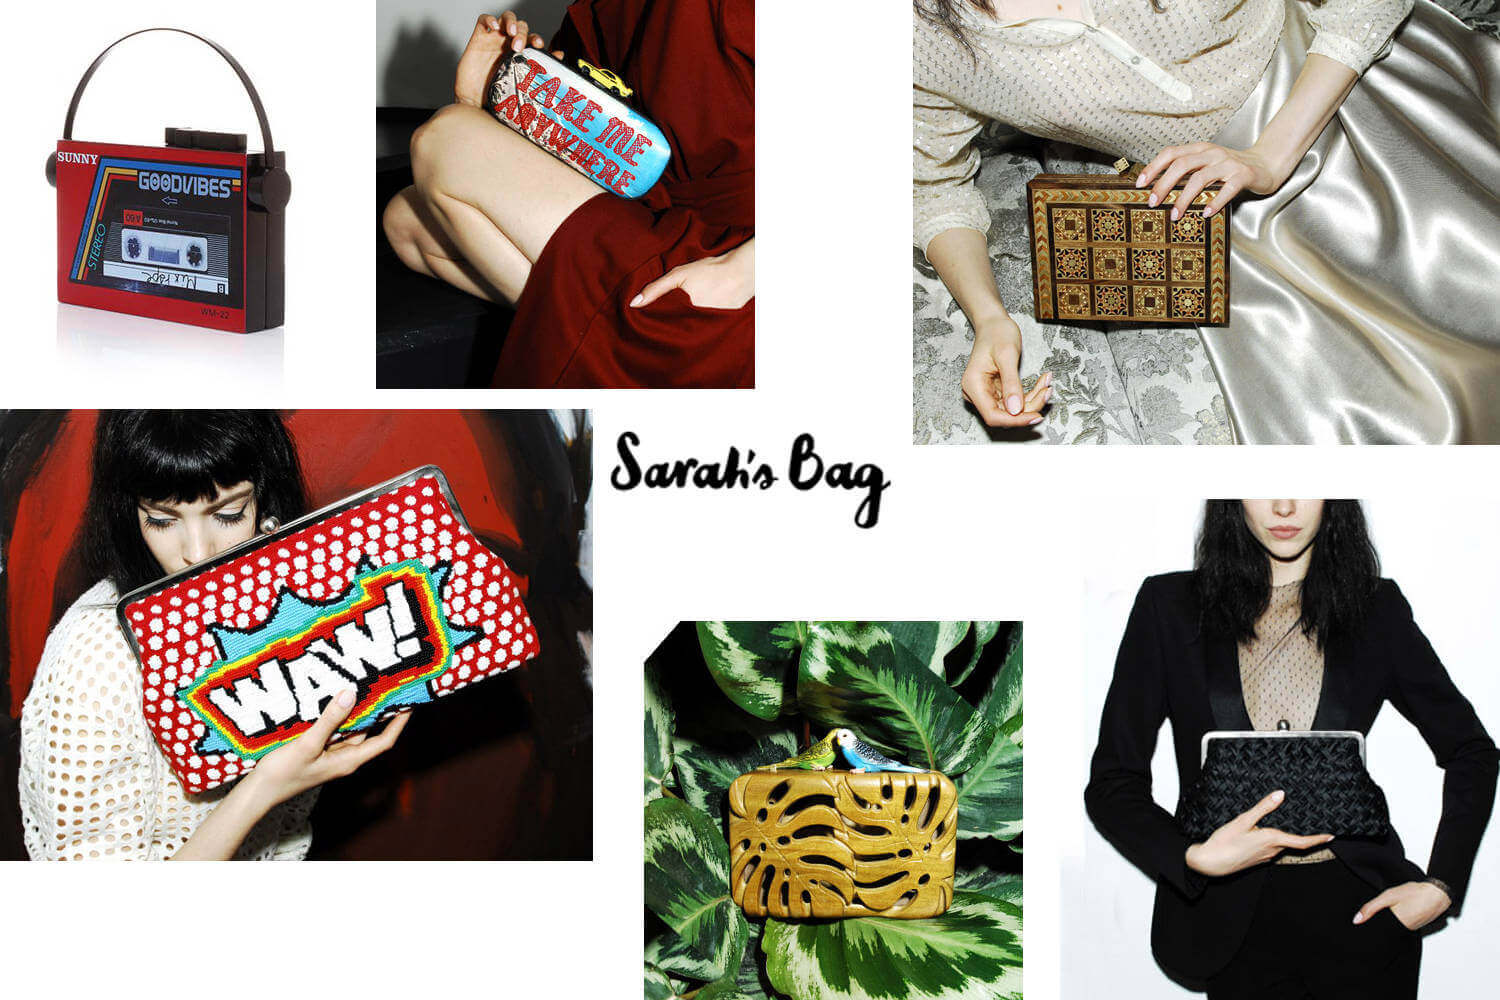 Sarah's Bag Luxury Ethical Fashion Clutches